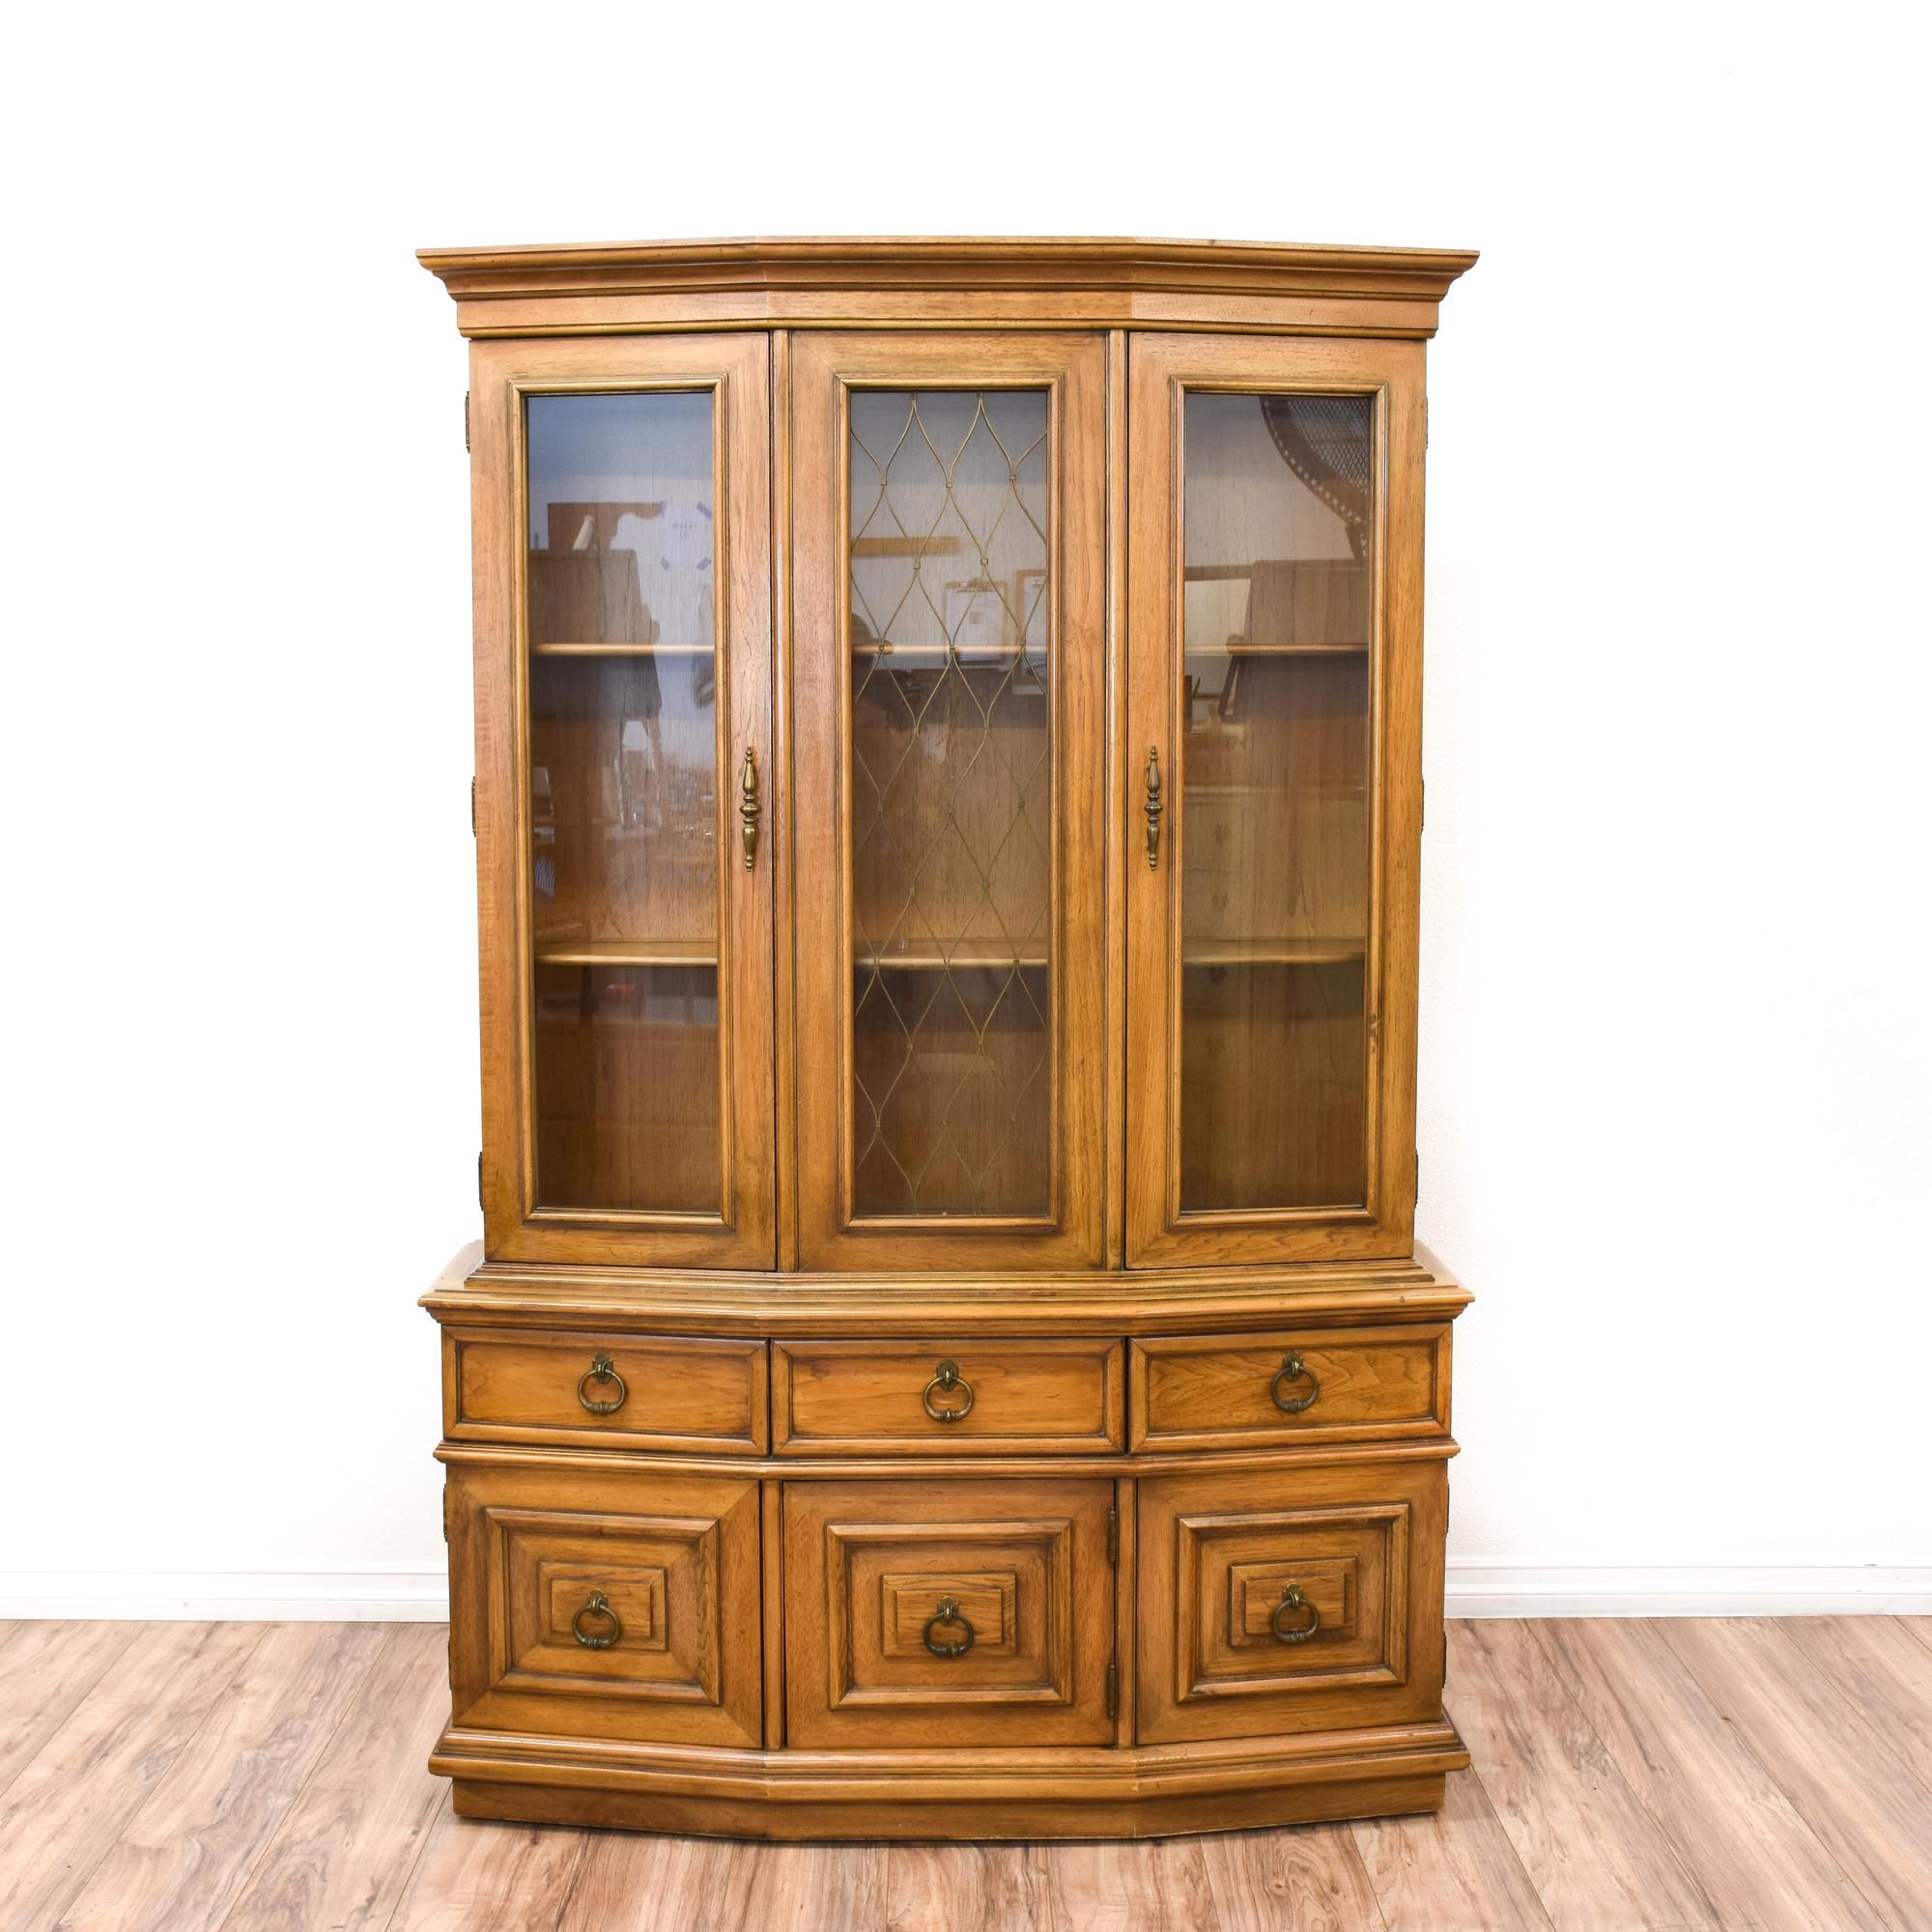 oak dop drawer item cabinets two wilson cabinet classic s half ferndale co collections furniture intercon china hutch with bellingham lynden drawers and buffet